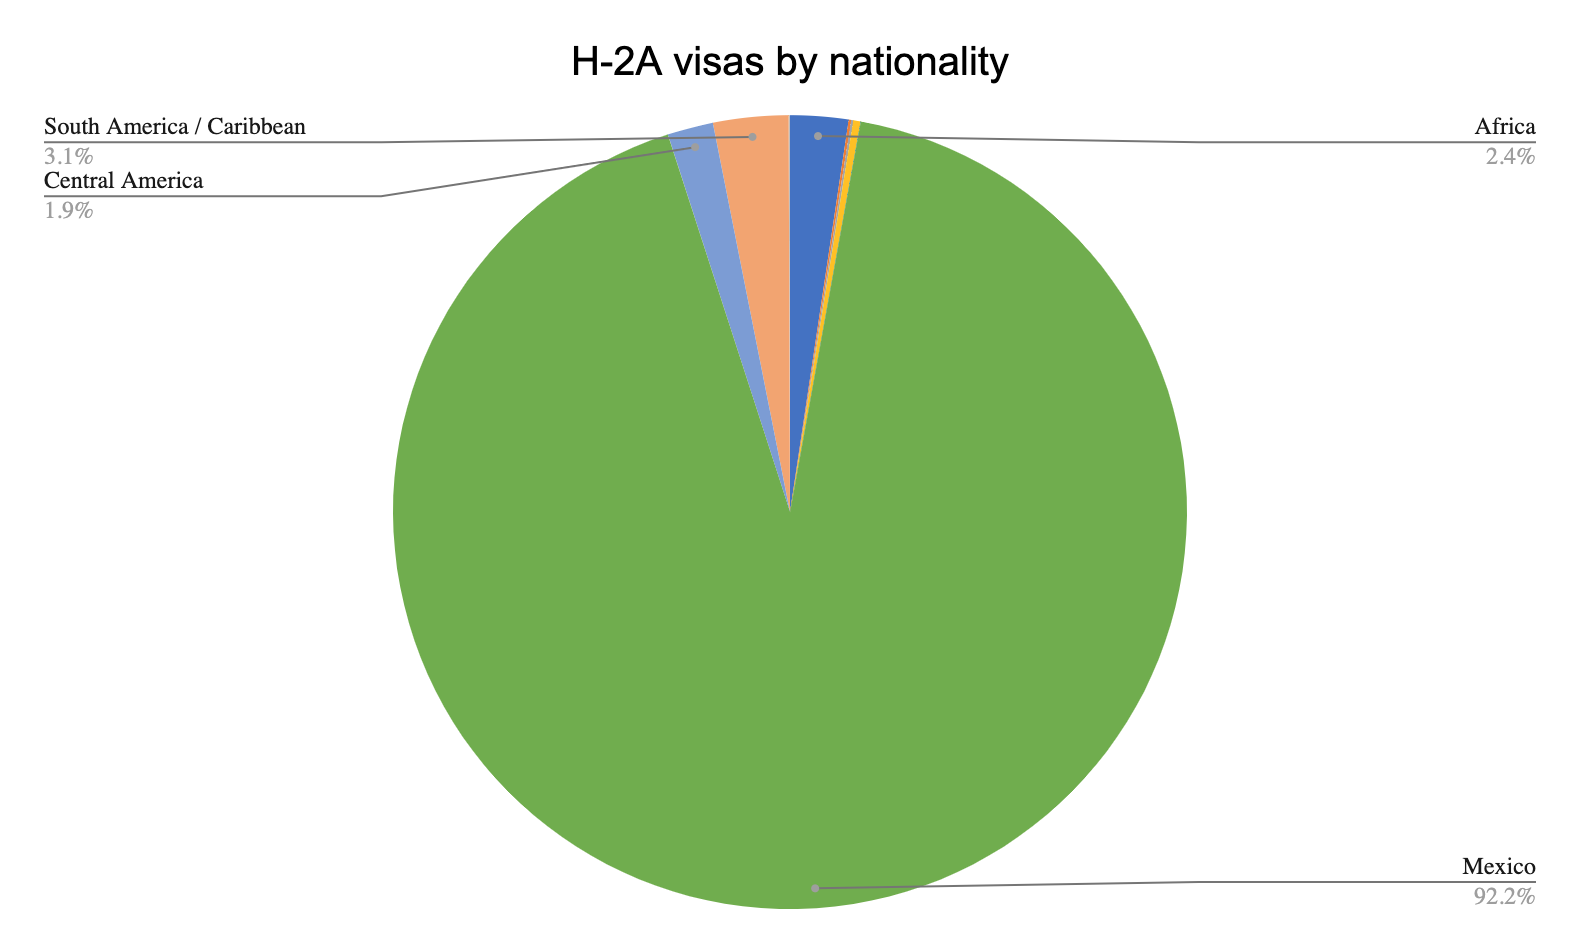 H-2A visas by nationality